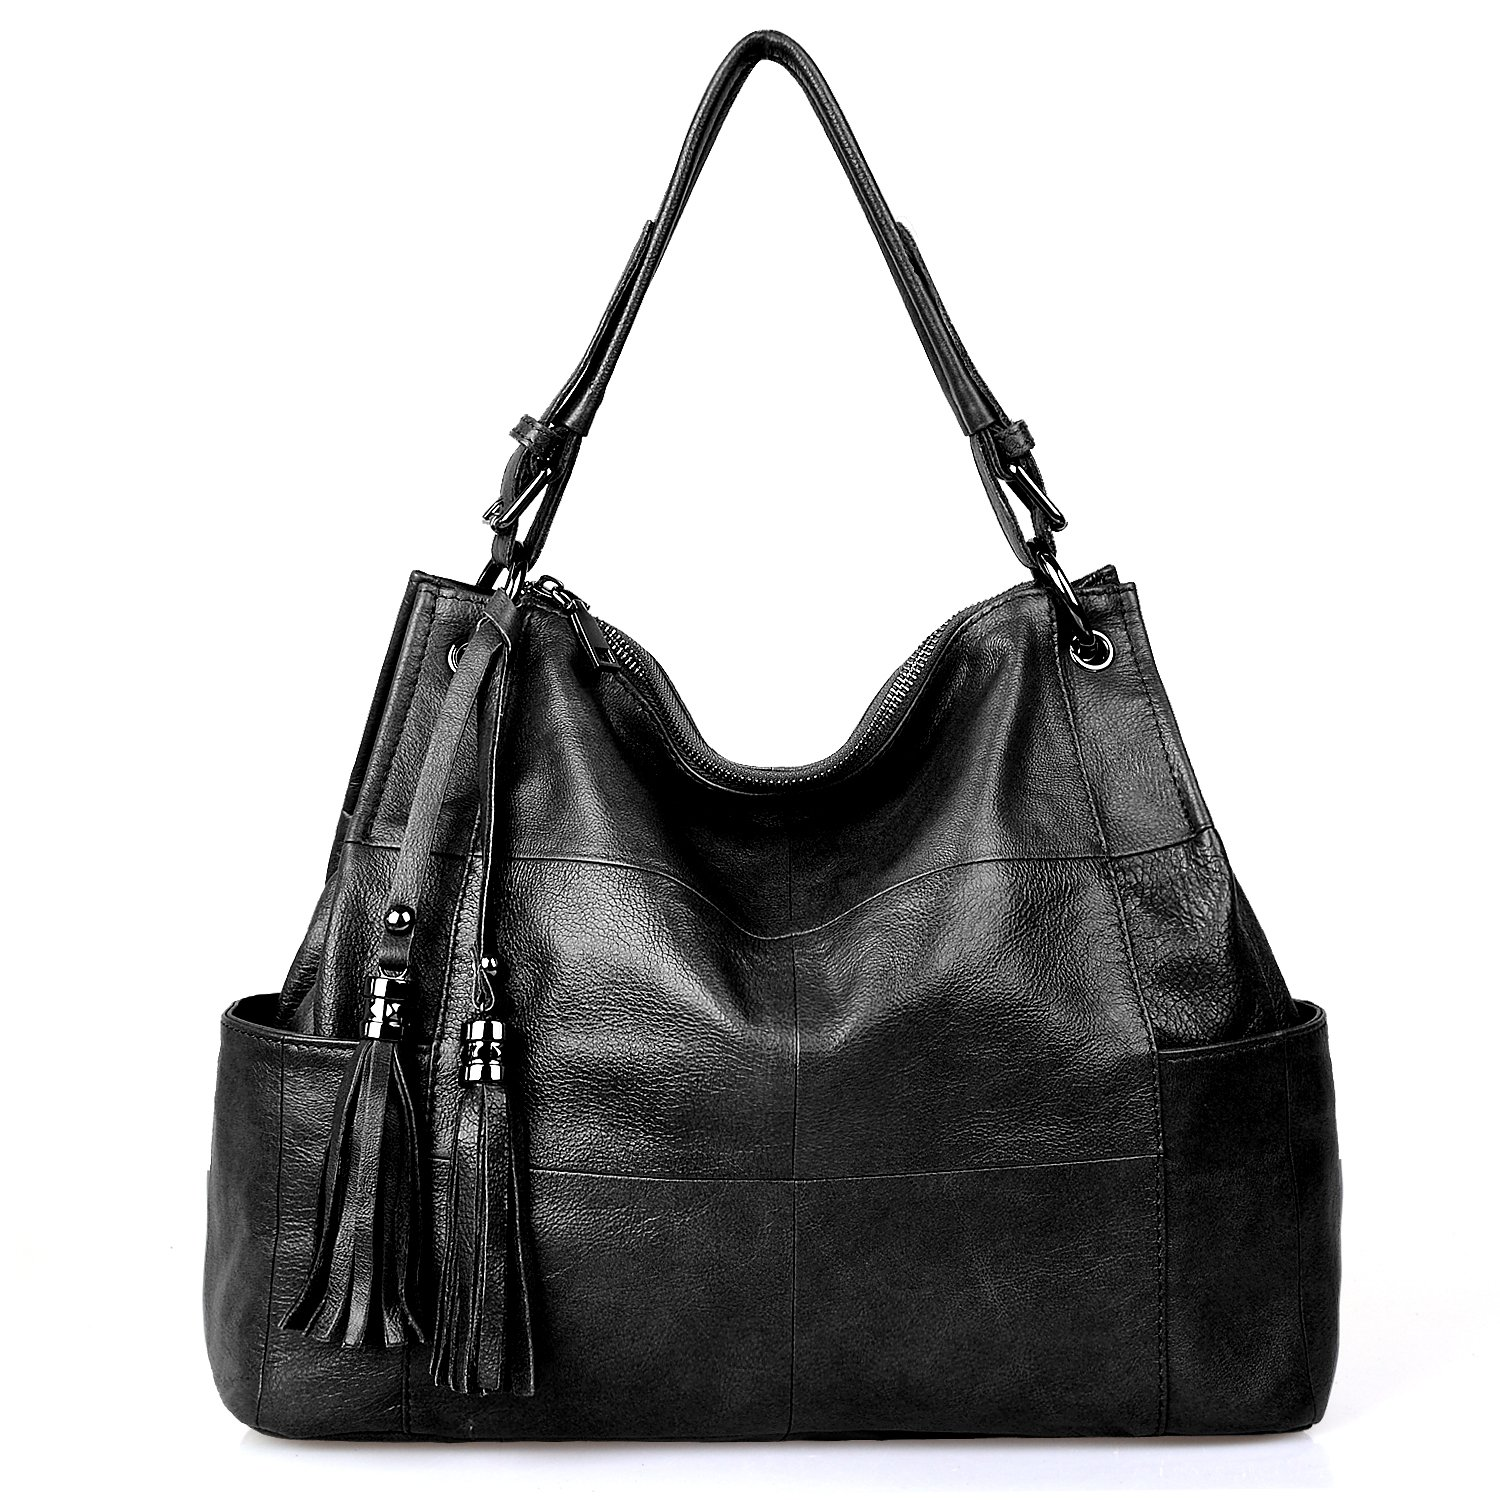 Jack&Chris Leather Hobo Purse Large Tote Shoulder Bag Tassel Satchel Handbags for Women, WB501C, Black